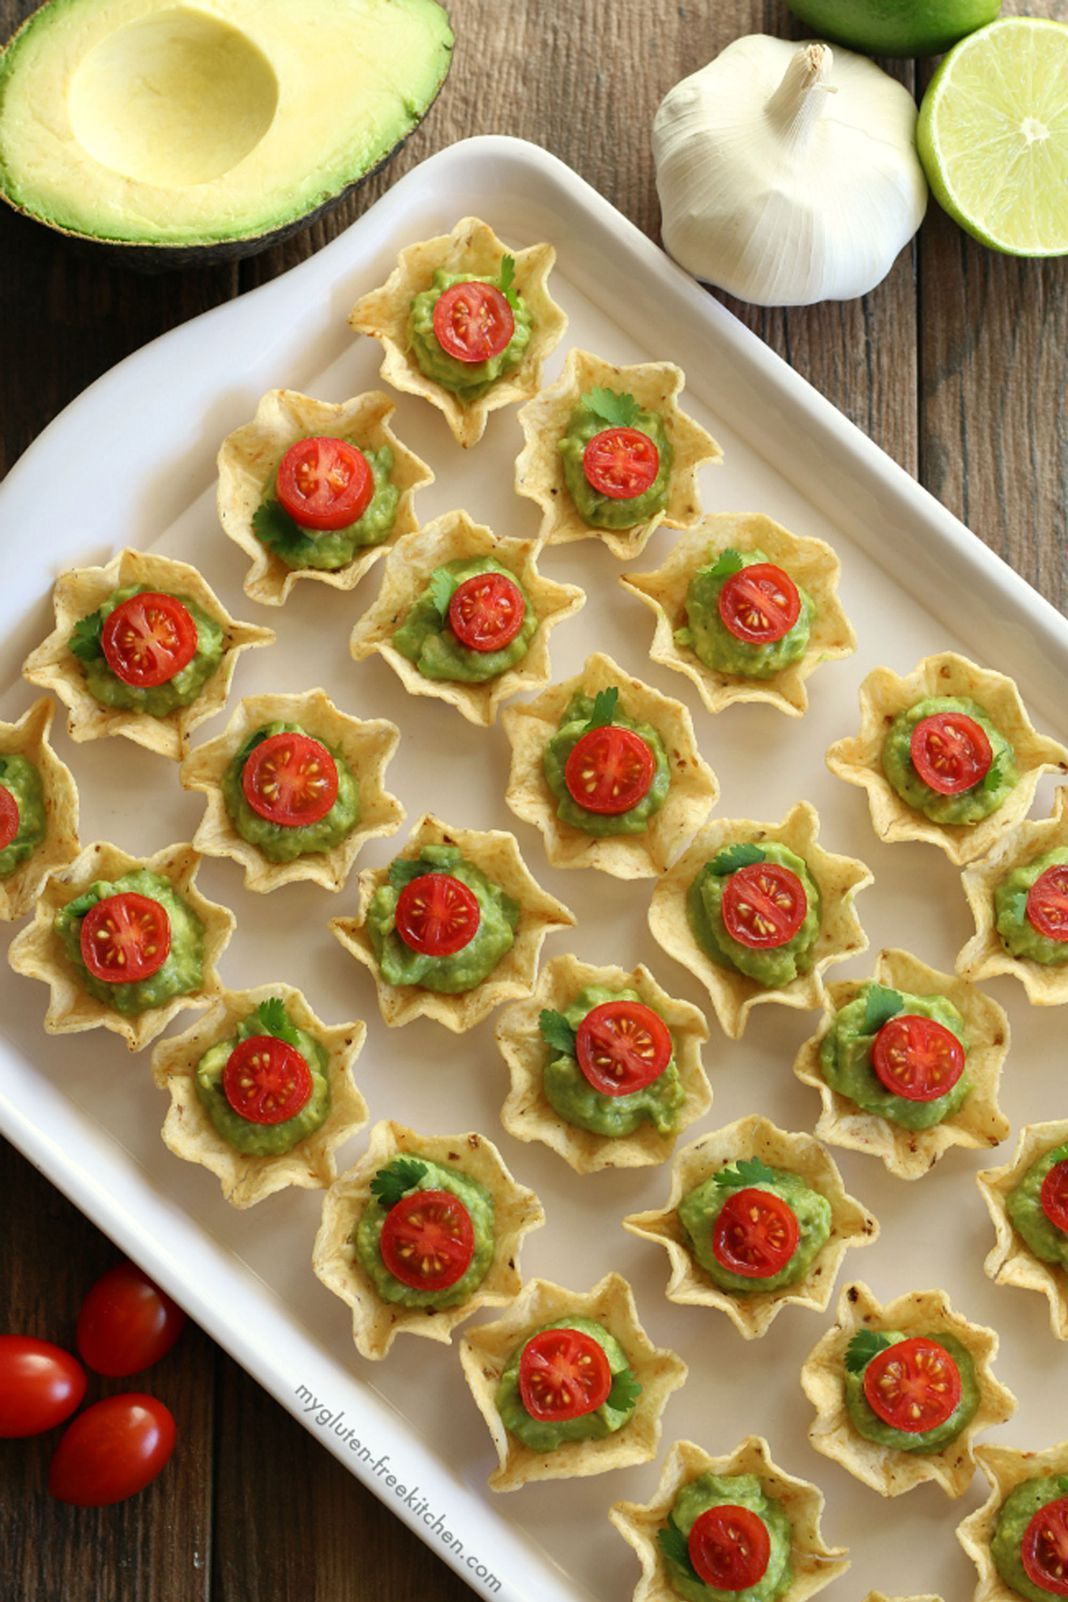 Your Christmas Party Guests Will Devour These Delicious Holiday Appetizers - Farmhouse bathroom decor - #appetizers #Bathroom #Christmas #Decor #delicious #Devour #Farmhouse #Guests #holiday #Holidayappetizers #Party